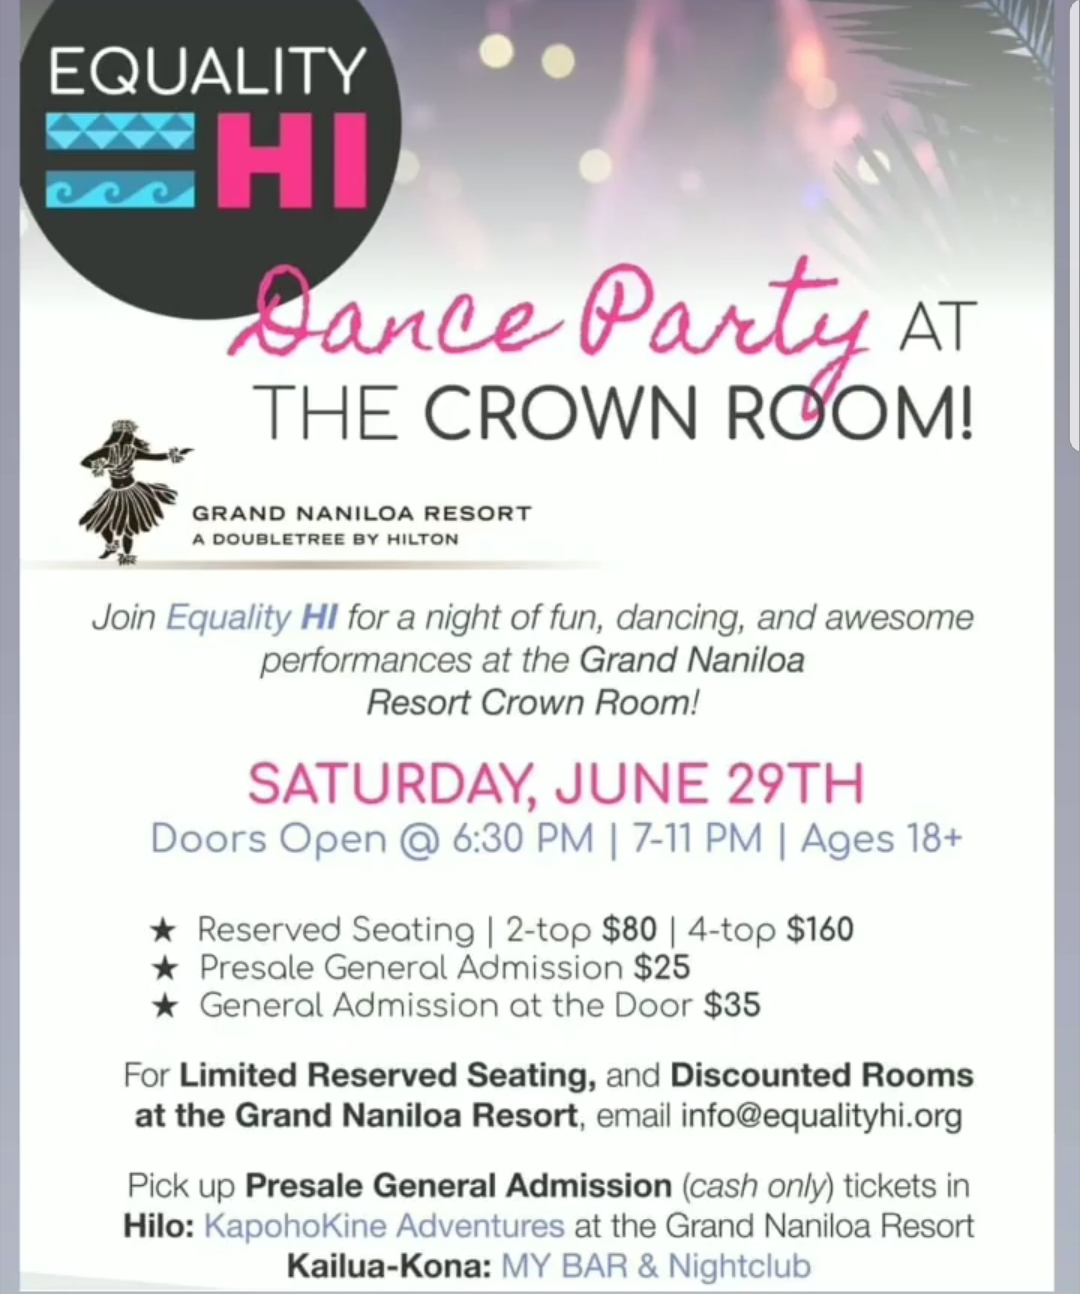 Equality HI Dance Party at the Crown Room